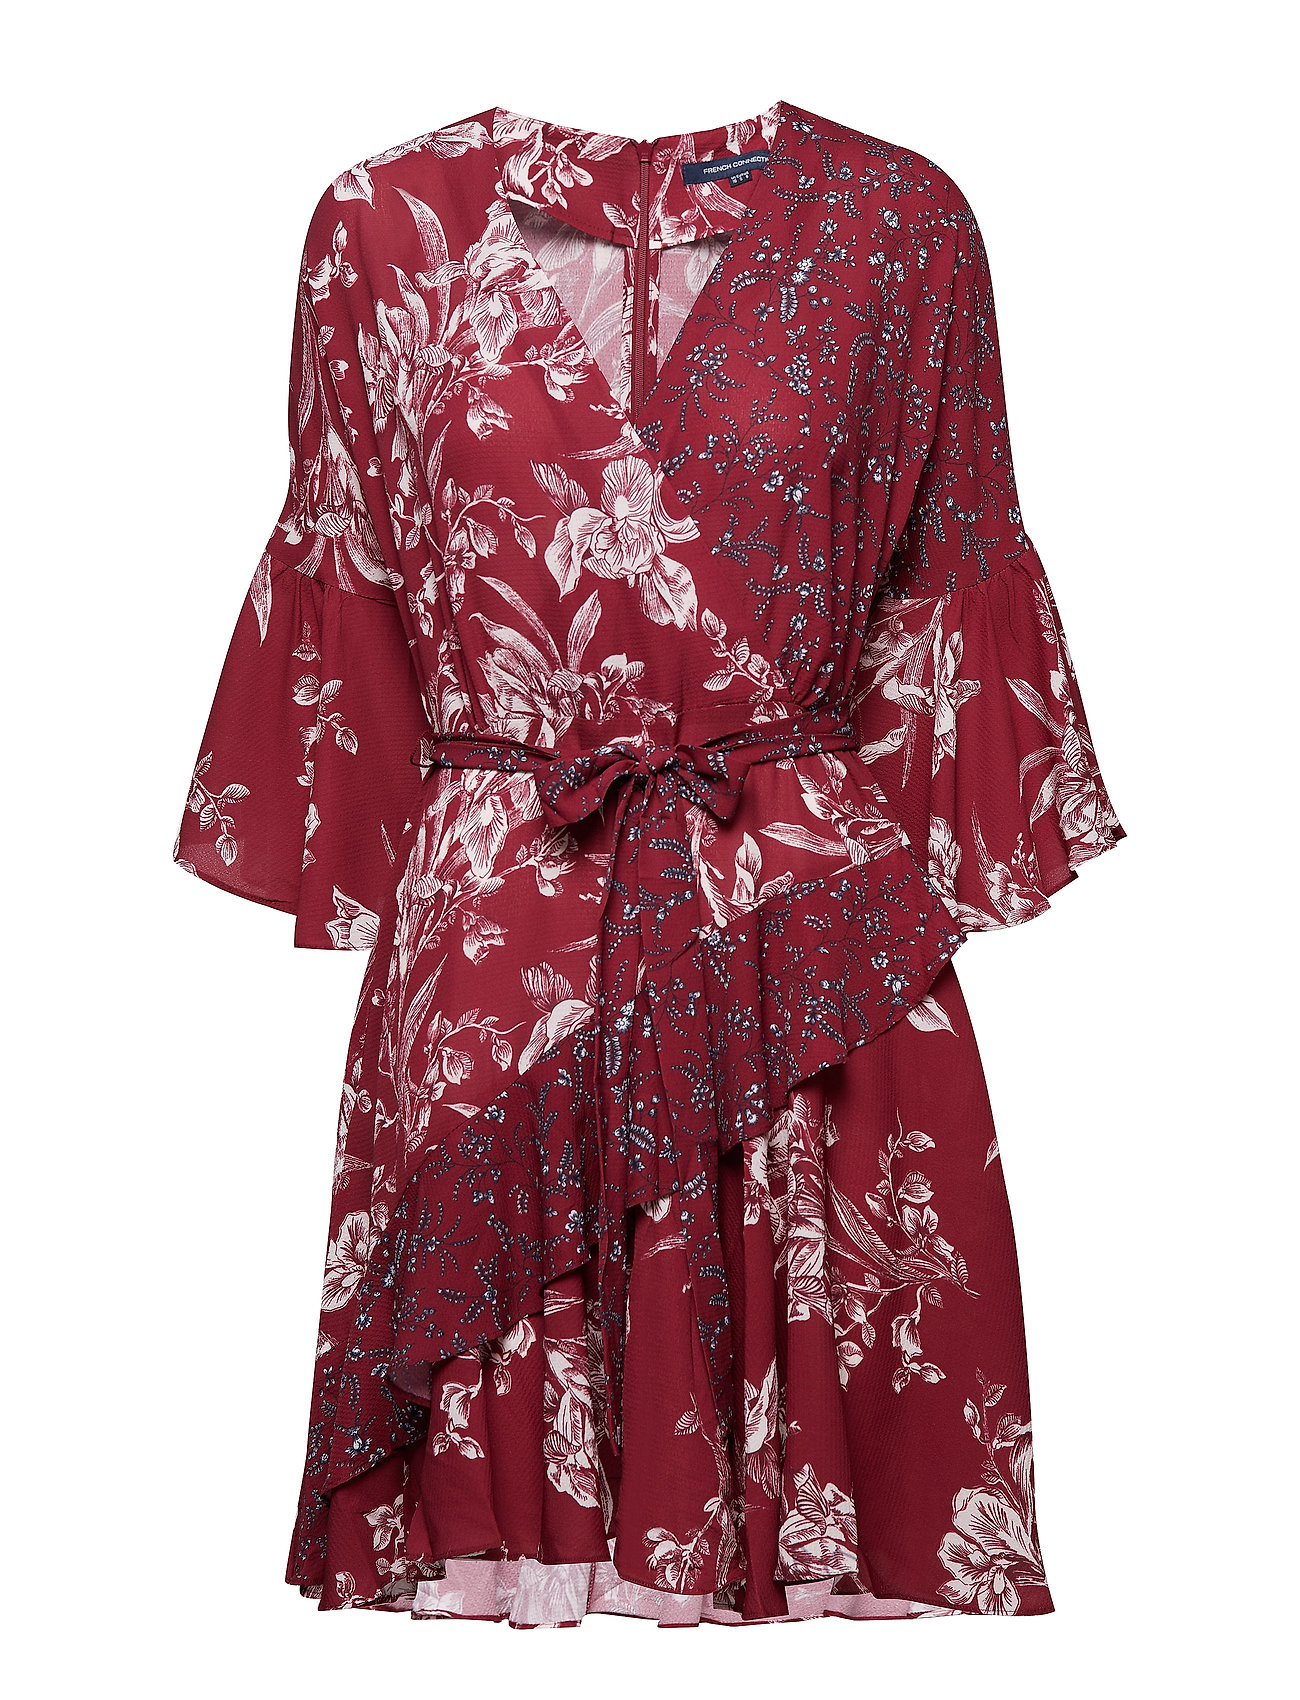 565f9da2901 Ellette Crepe Frill Wrap Dress (Deep Framboise Multi) (96.25 ...